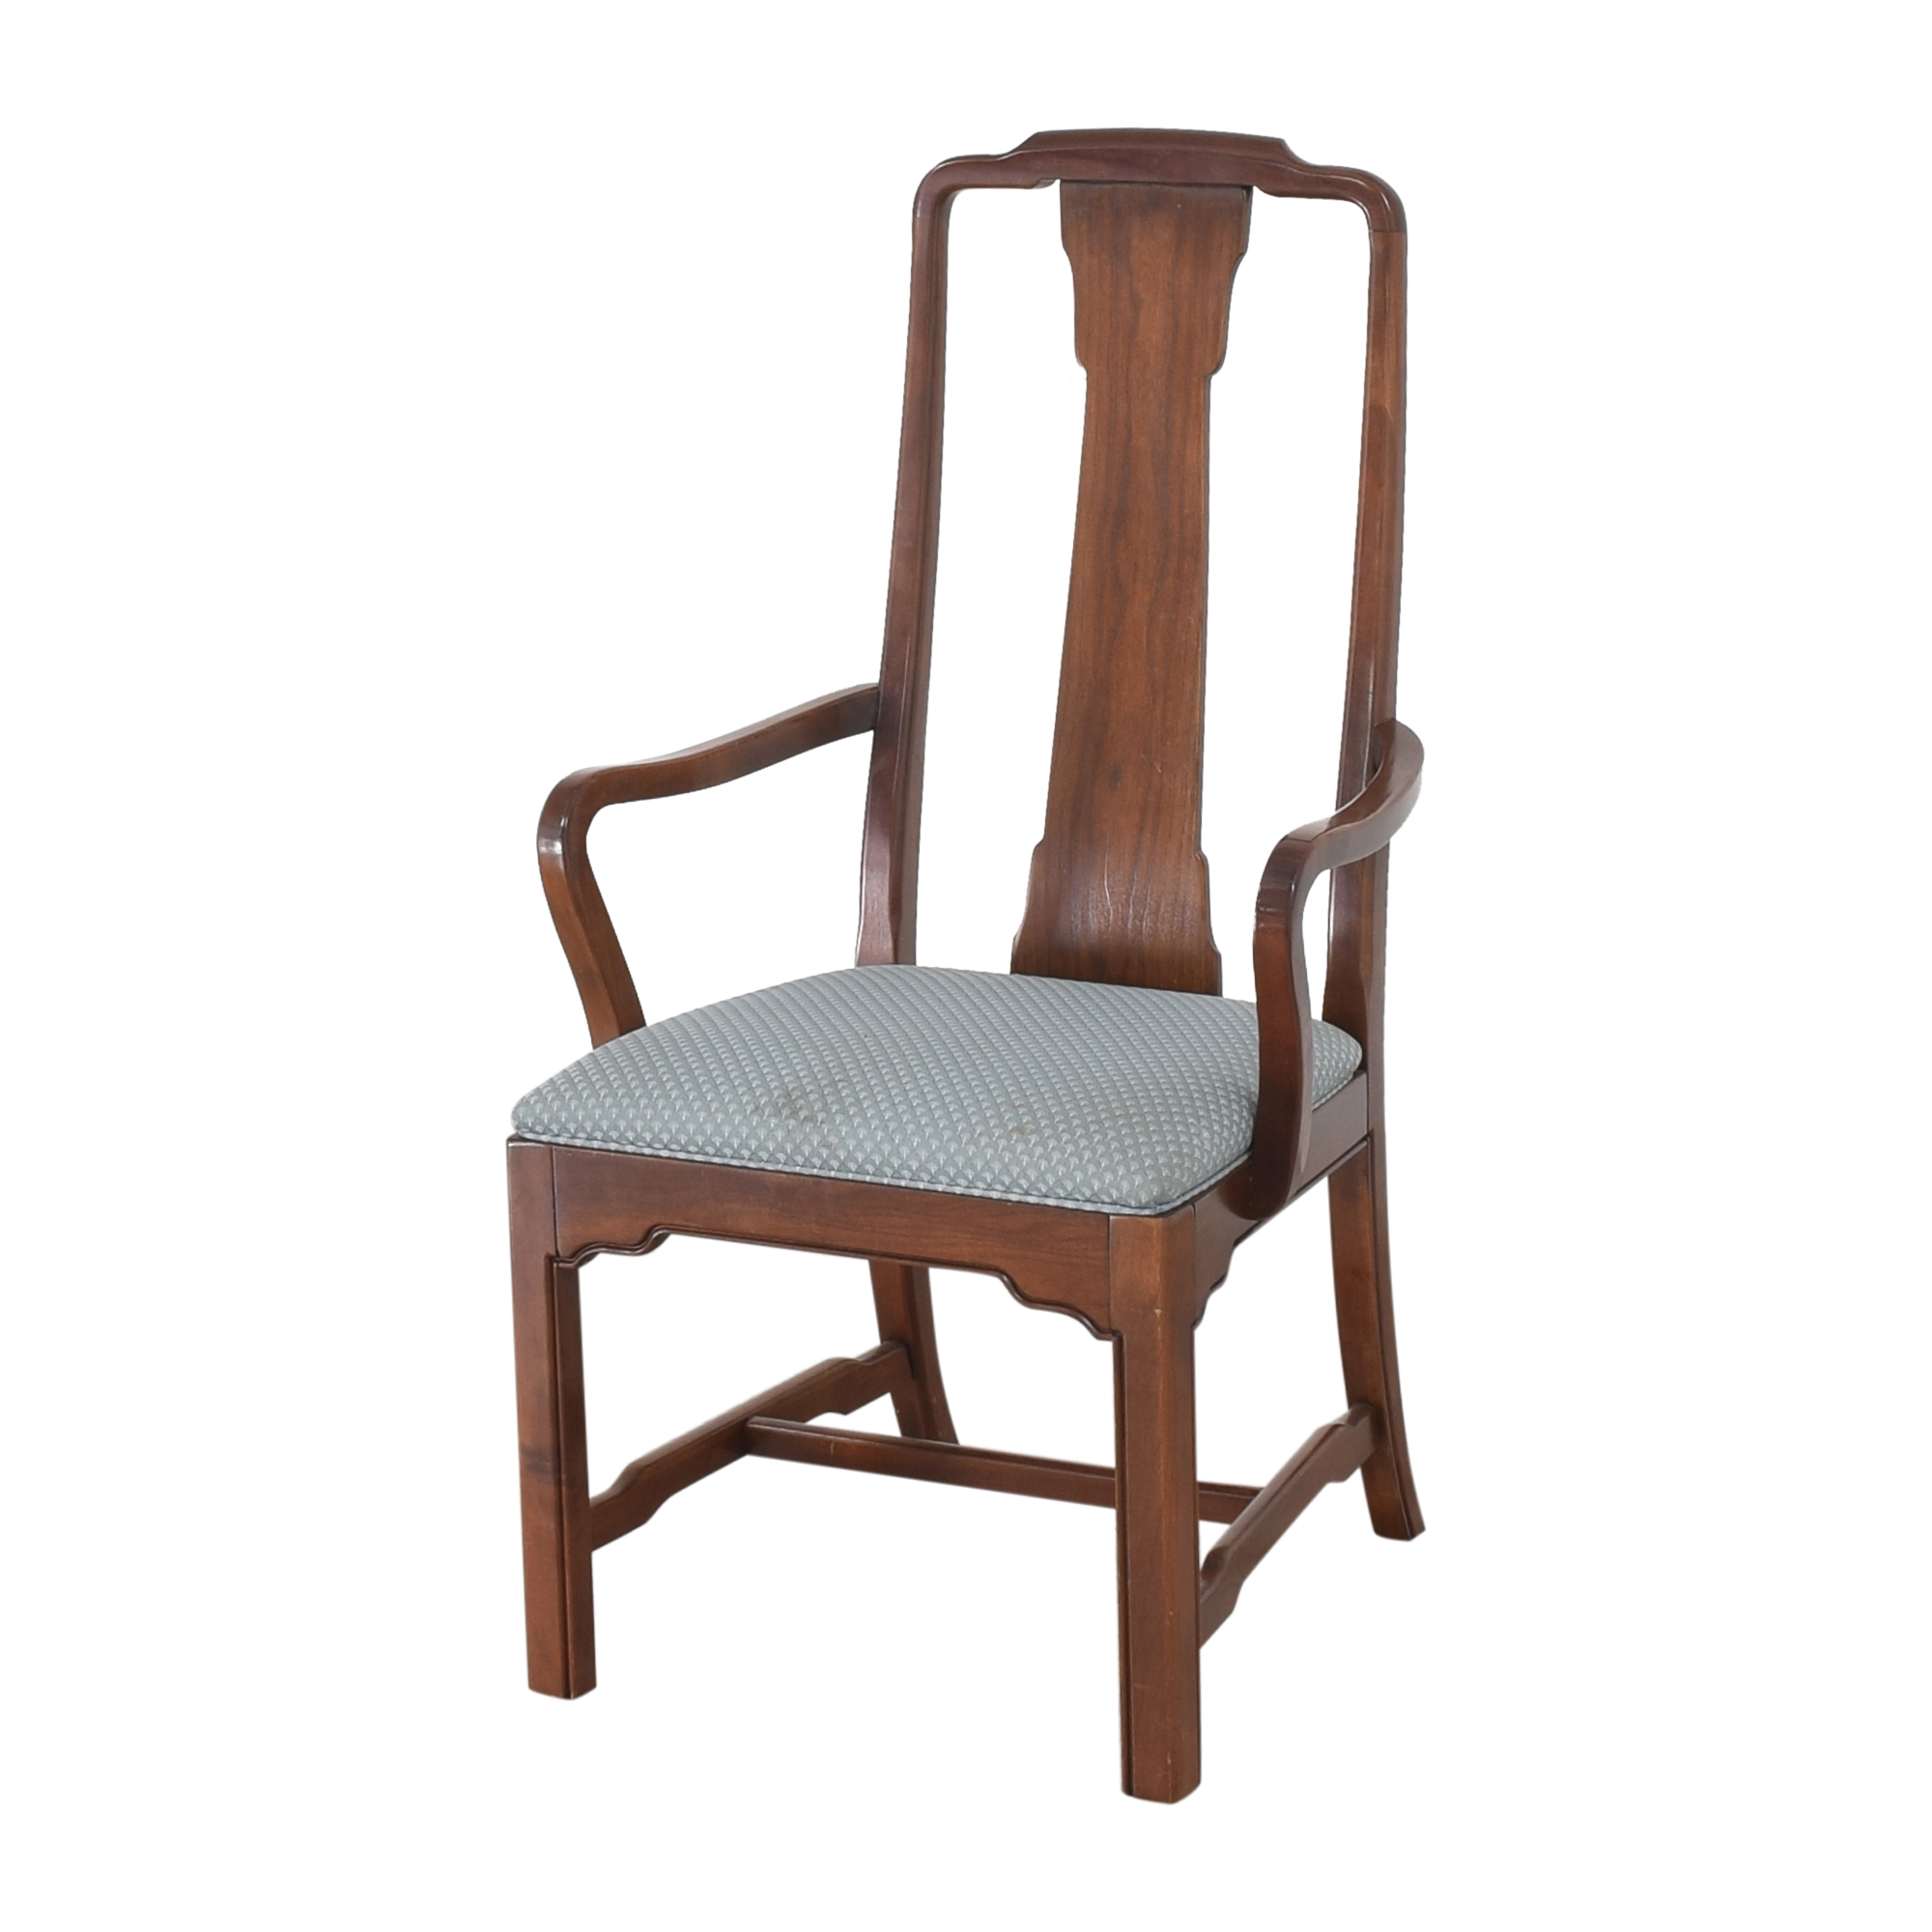 shop Ethan Allen Ethan Allen Canova Campaign Dining Arm Chairs online